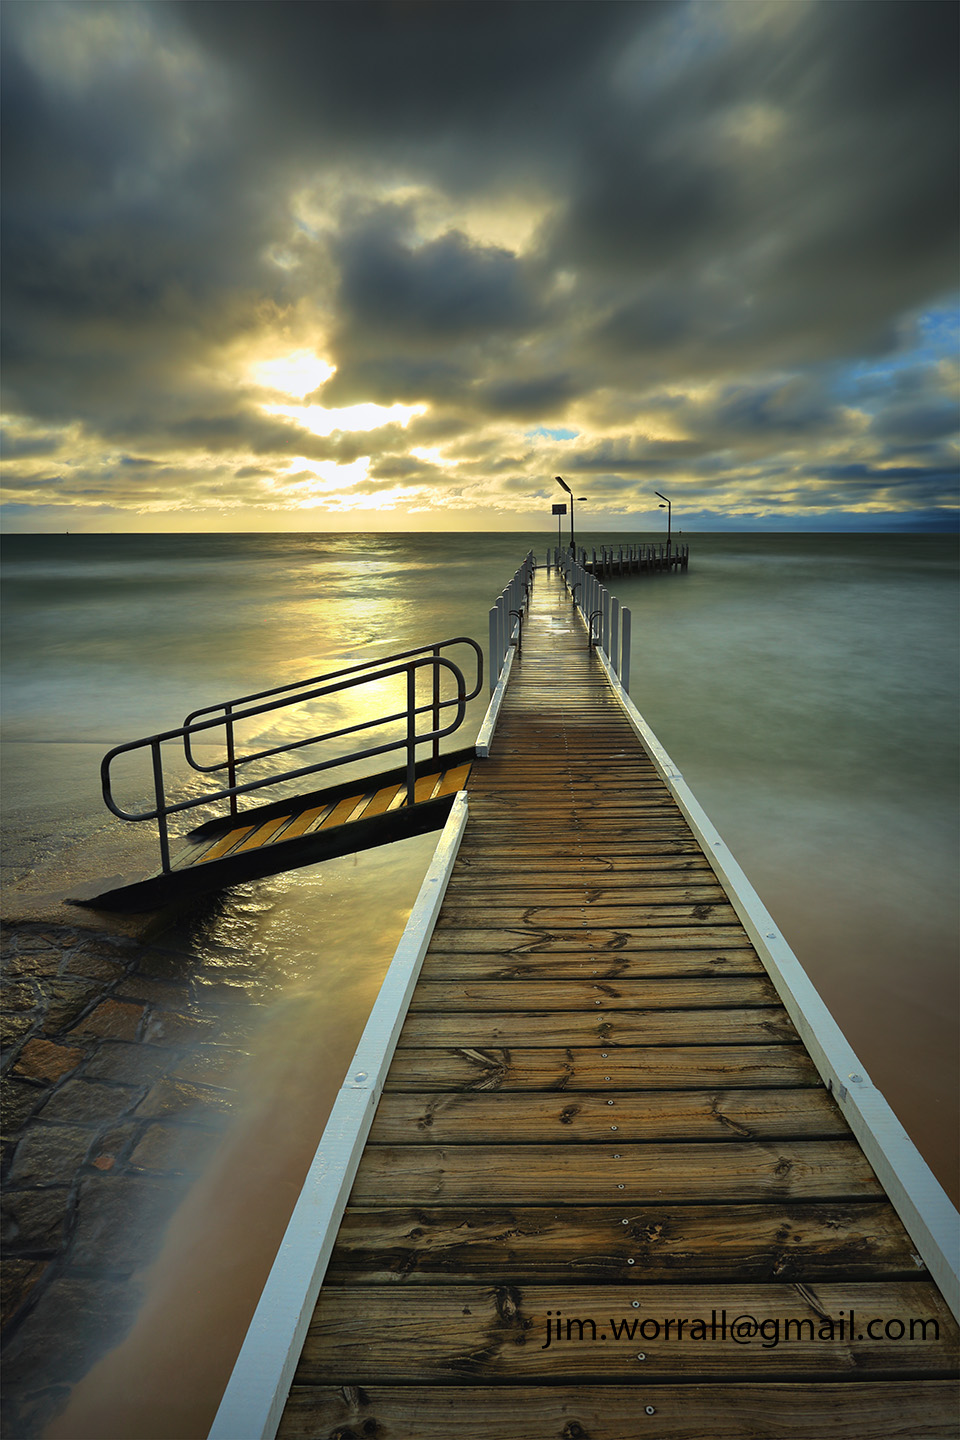 safety beach, jetty, jim worrall, port phillip bay, mornington peninsula, sunset, long exposure, nd filter